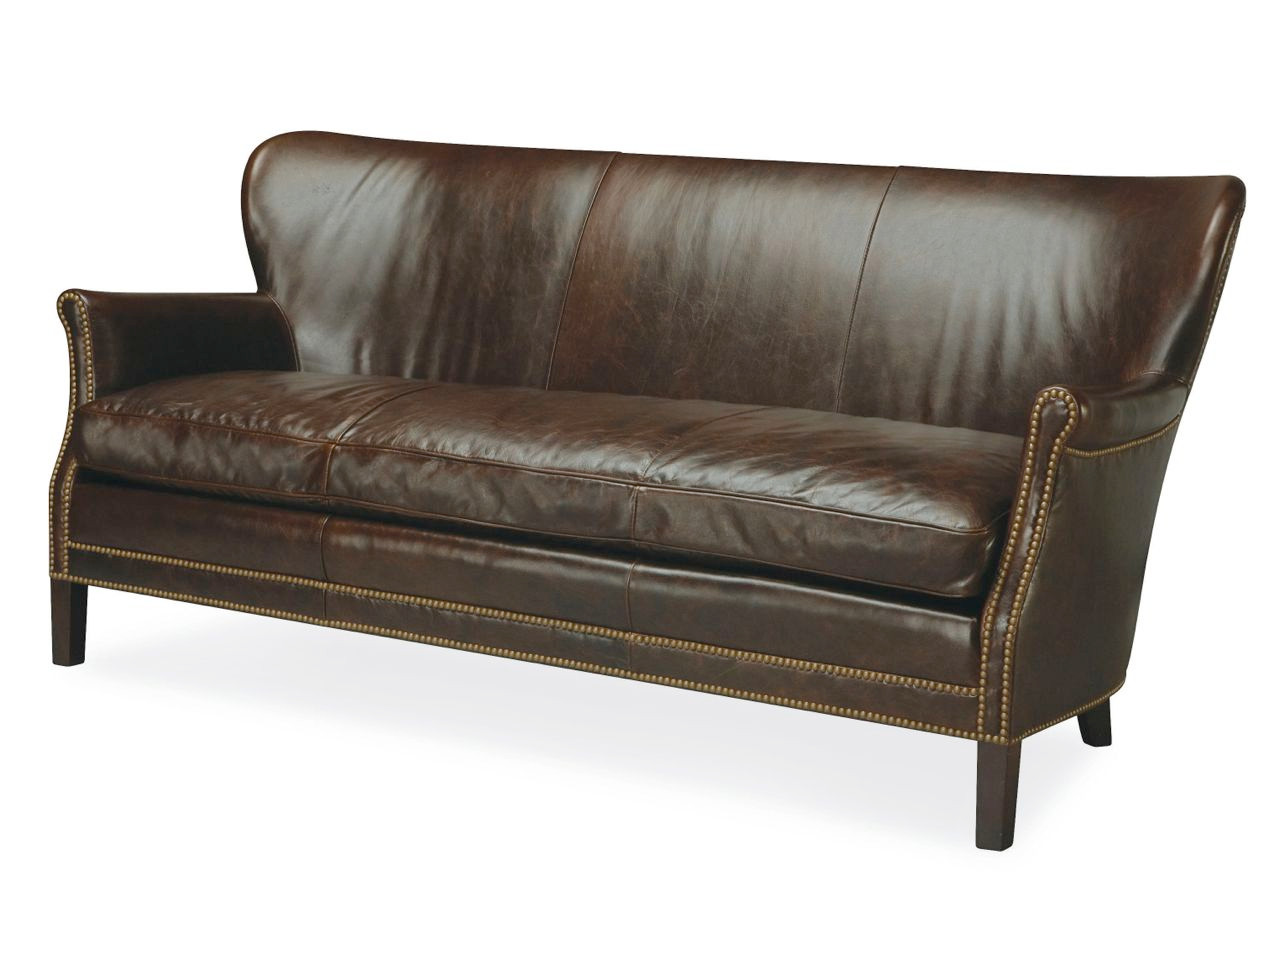 ... Webb Leather Apartment Sofa. Image 1